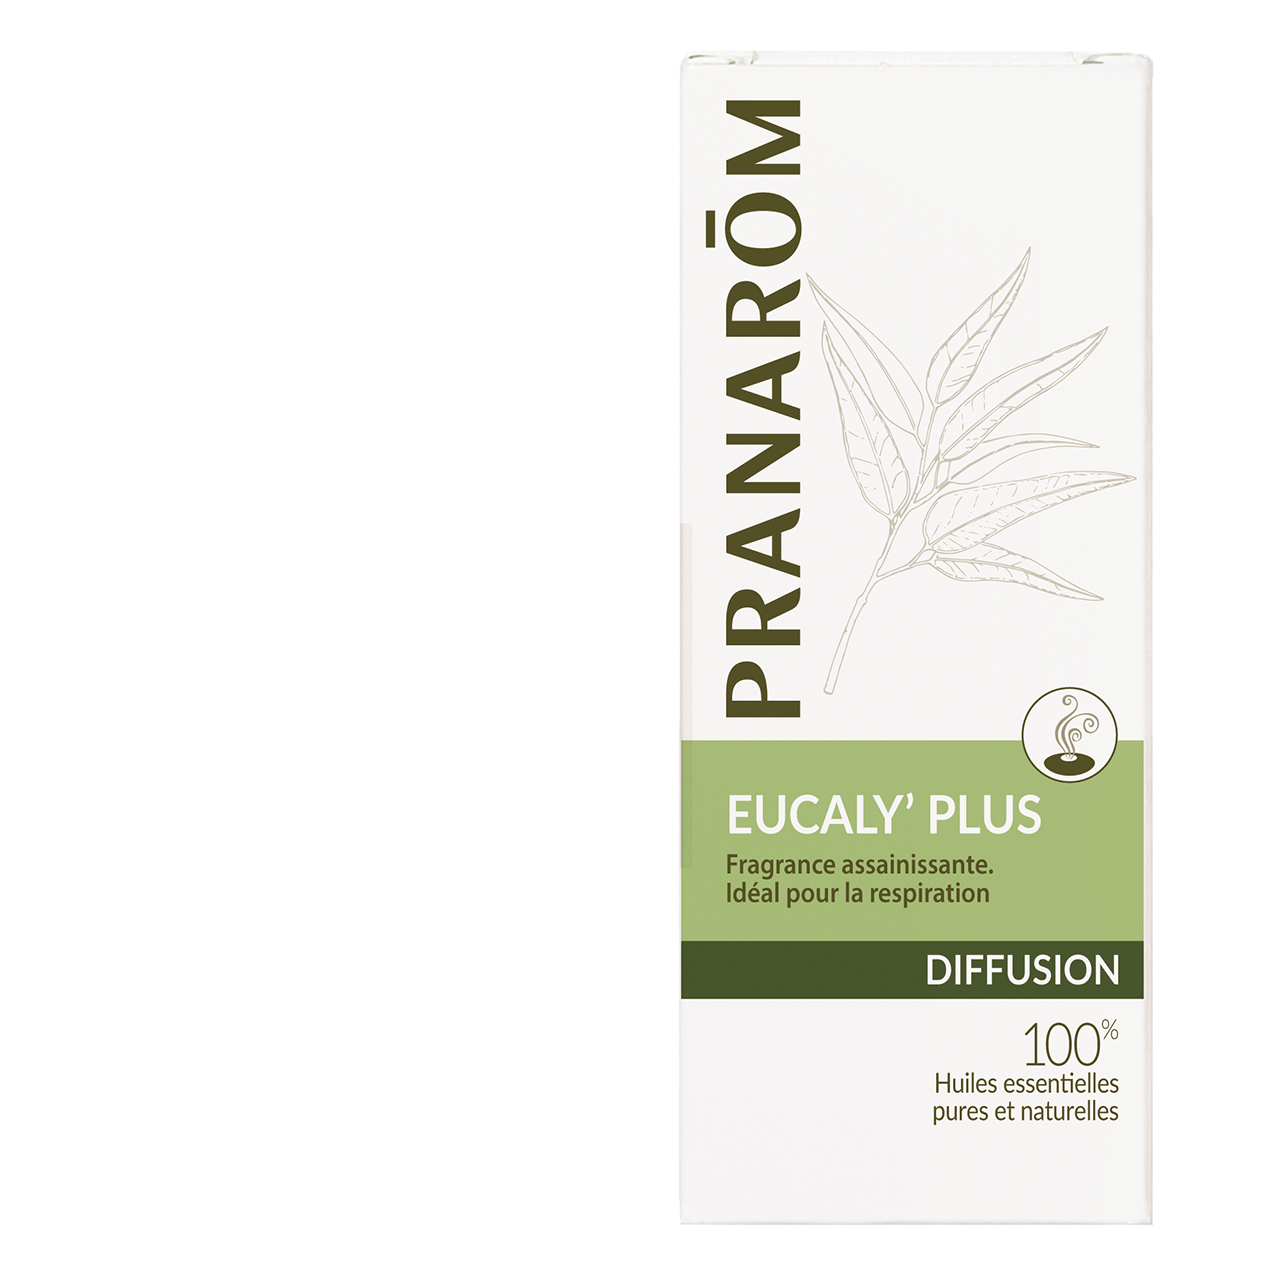 eucaly'plus--100-pure-and-natural-essential-oils-for-diffusing